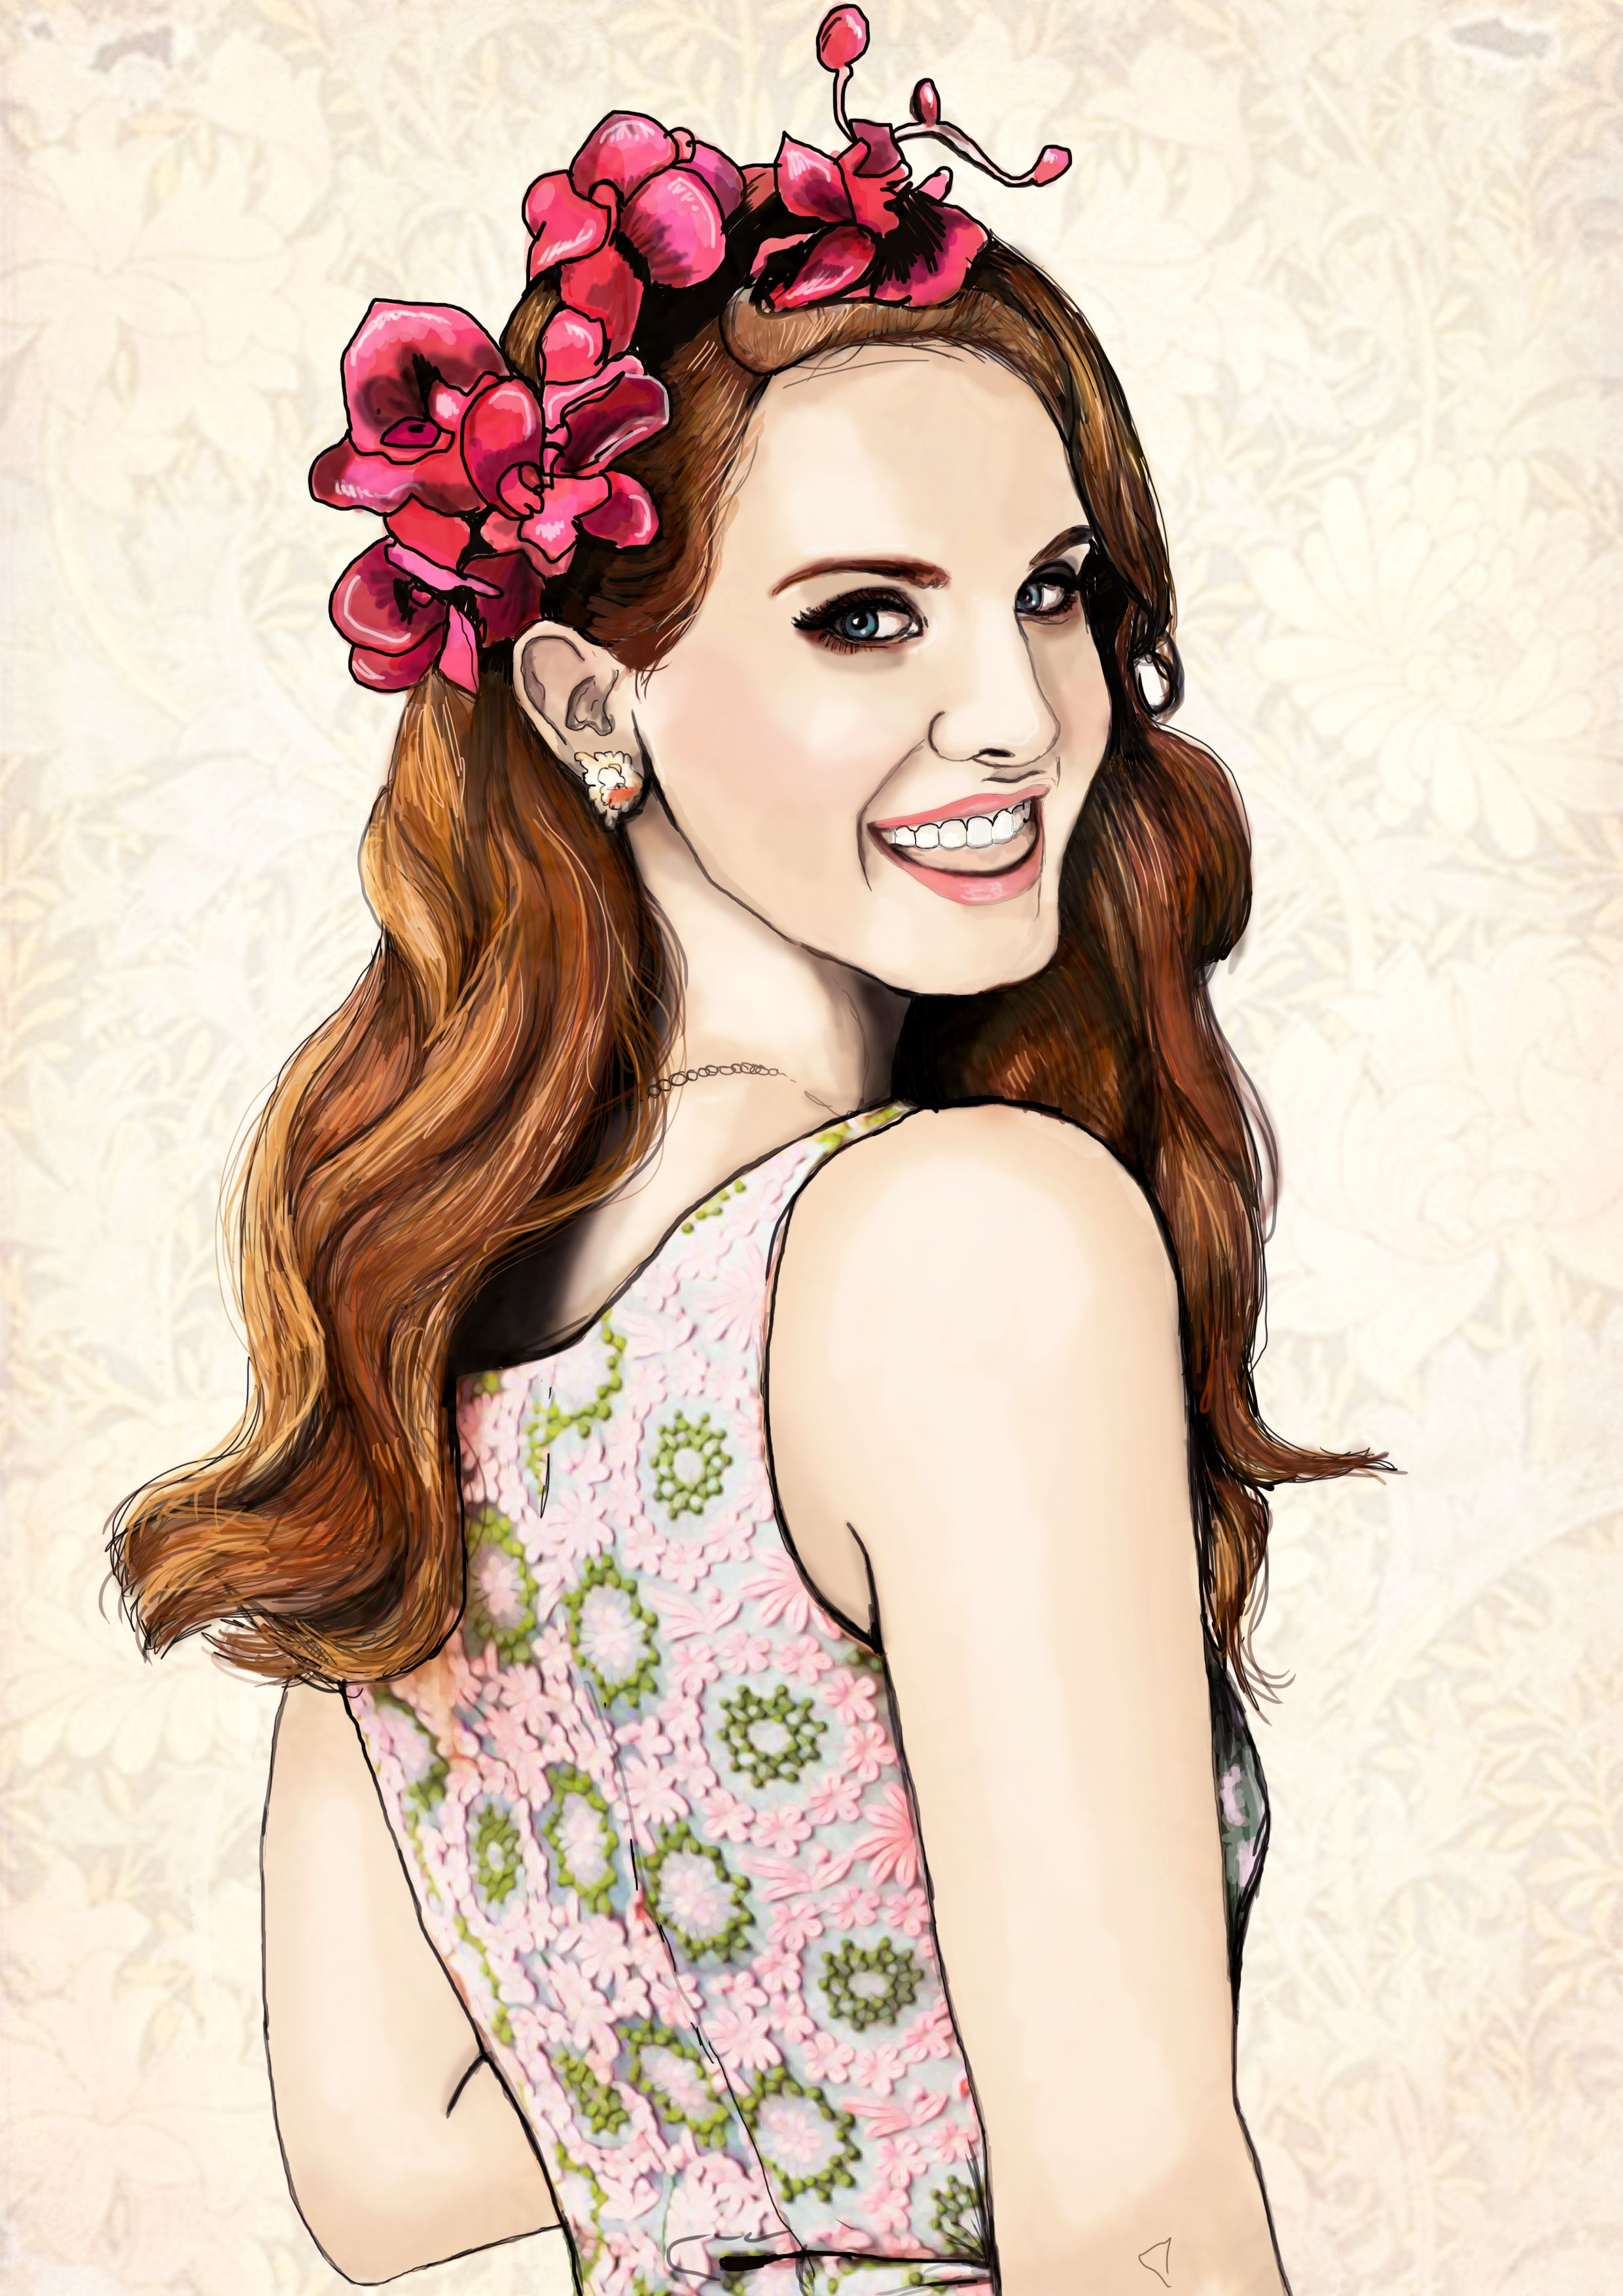 Iphone wallpaper tumblr lana - The Lovely Lana Del Rey Illustration By Paige Joanna